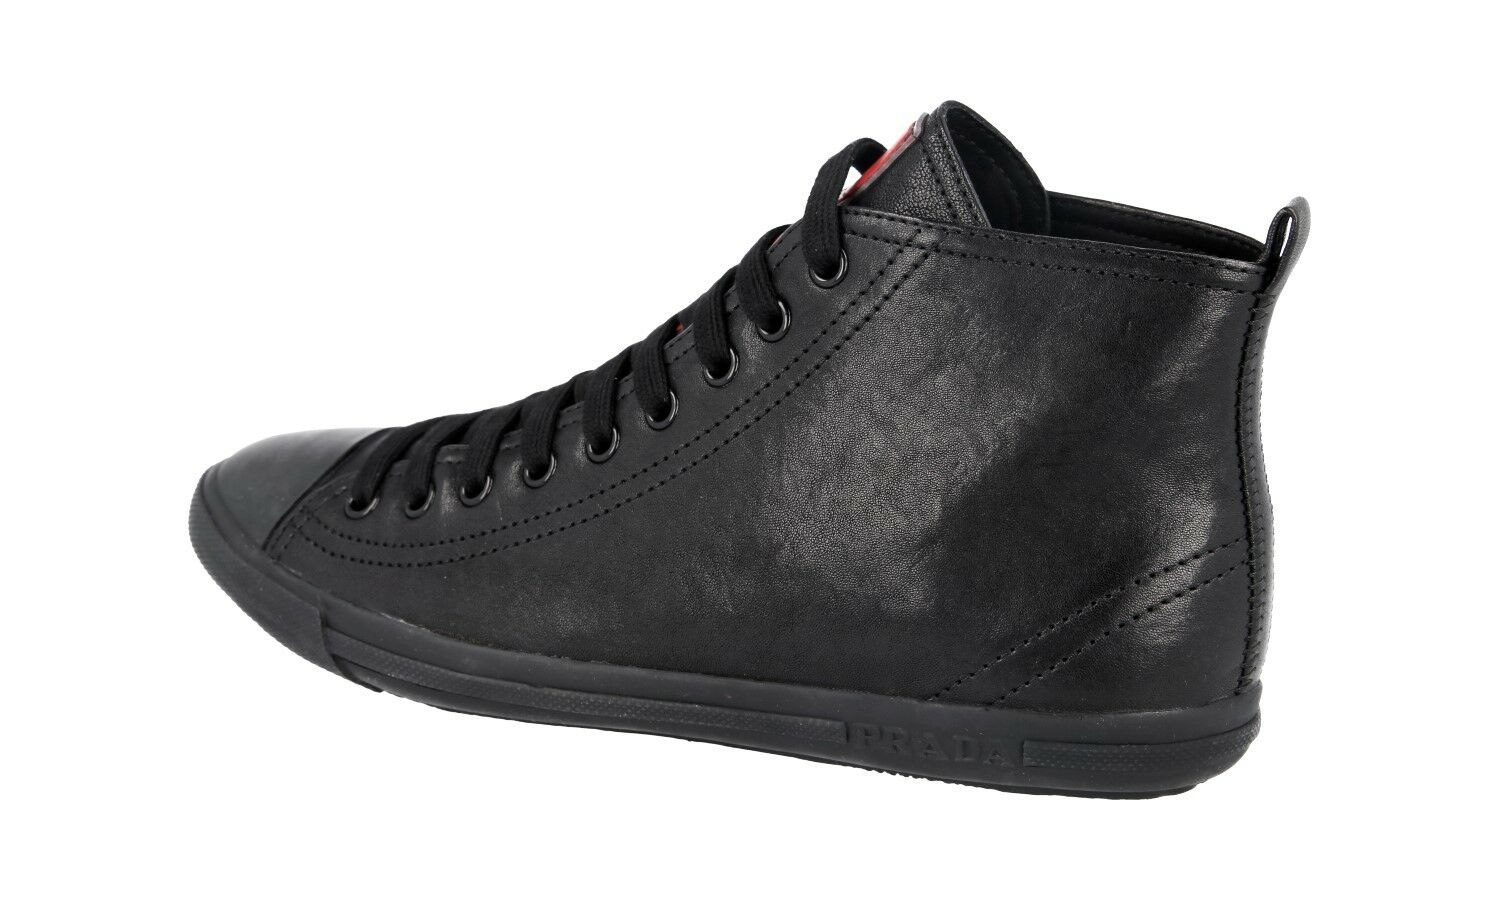 AUTH AUTH AUTH LUXURY PRADA HIGH TOP SNEAKERS SHOES 3T5731 BLACK US 8 EU 38 38,5 f32aad